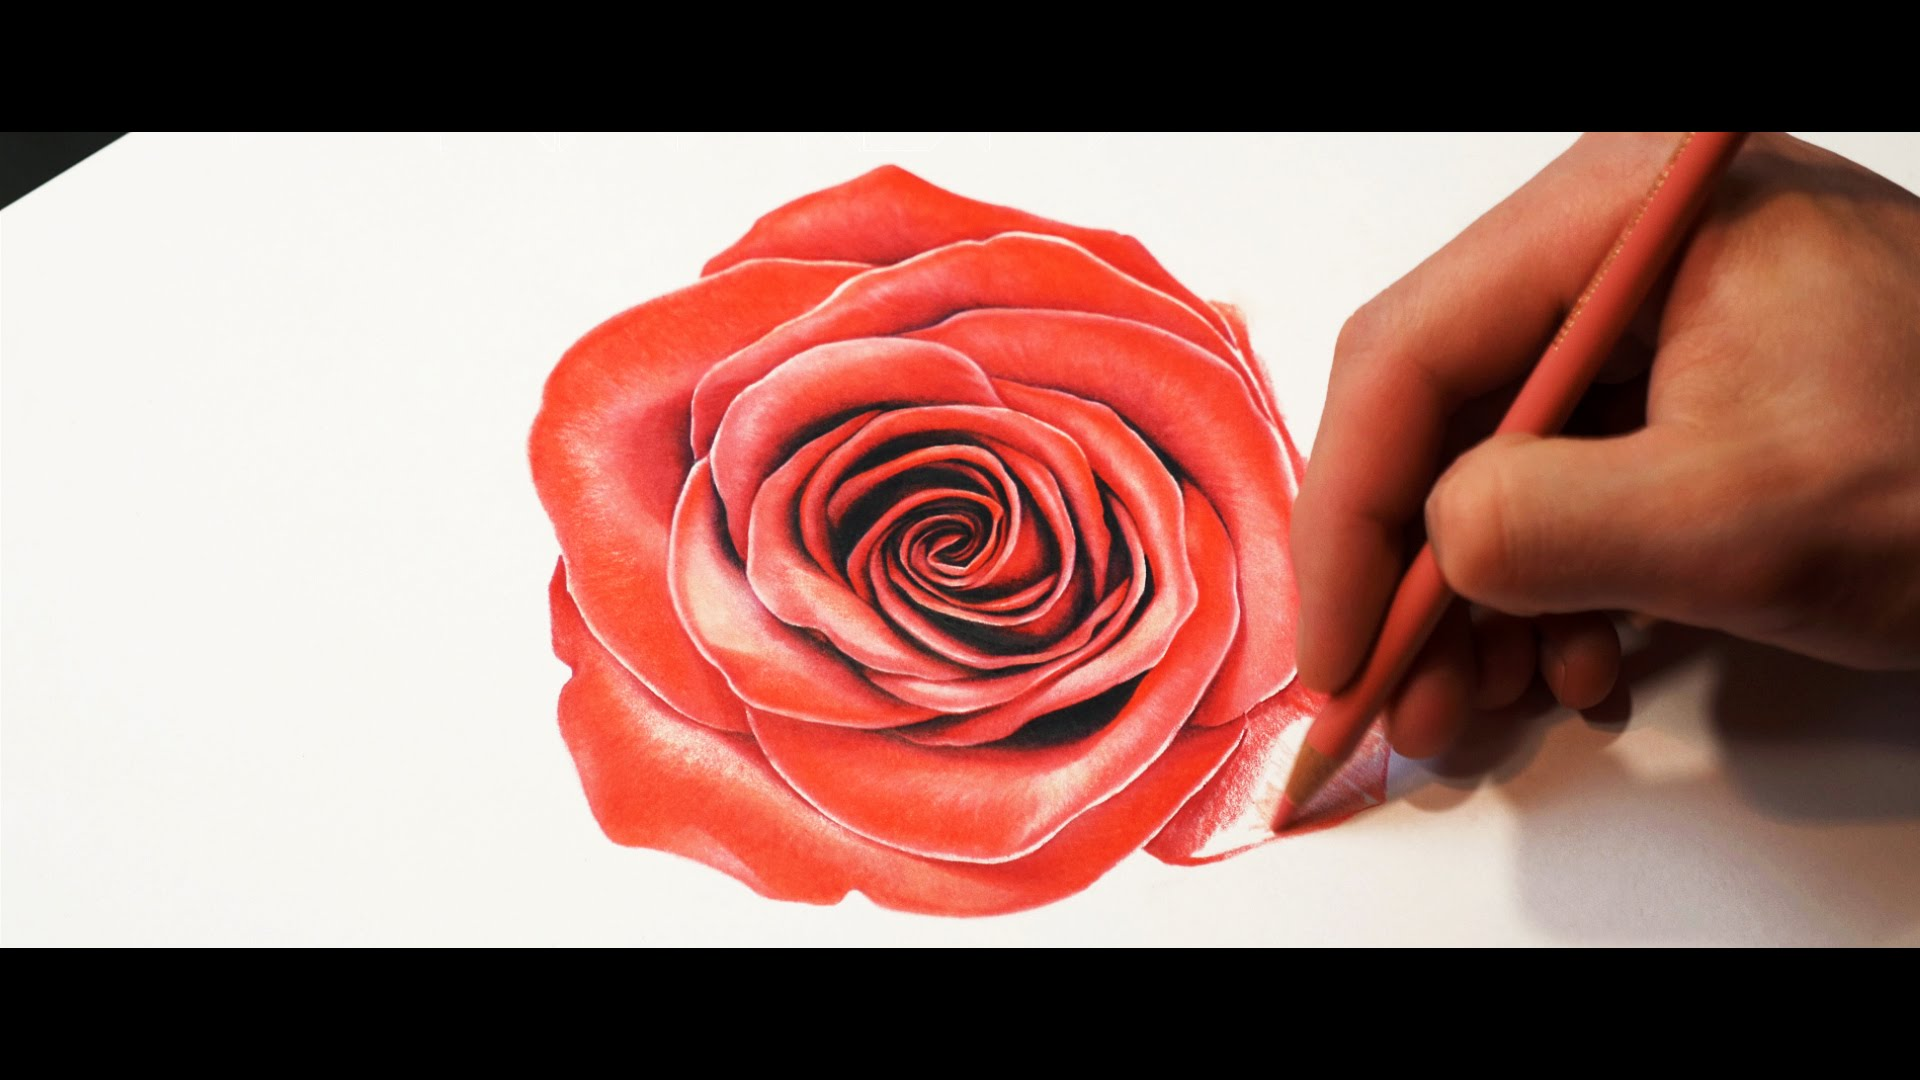 Drawn red rose color pencil YouTube Color Speed Pencils with